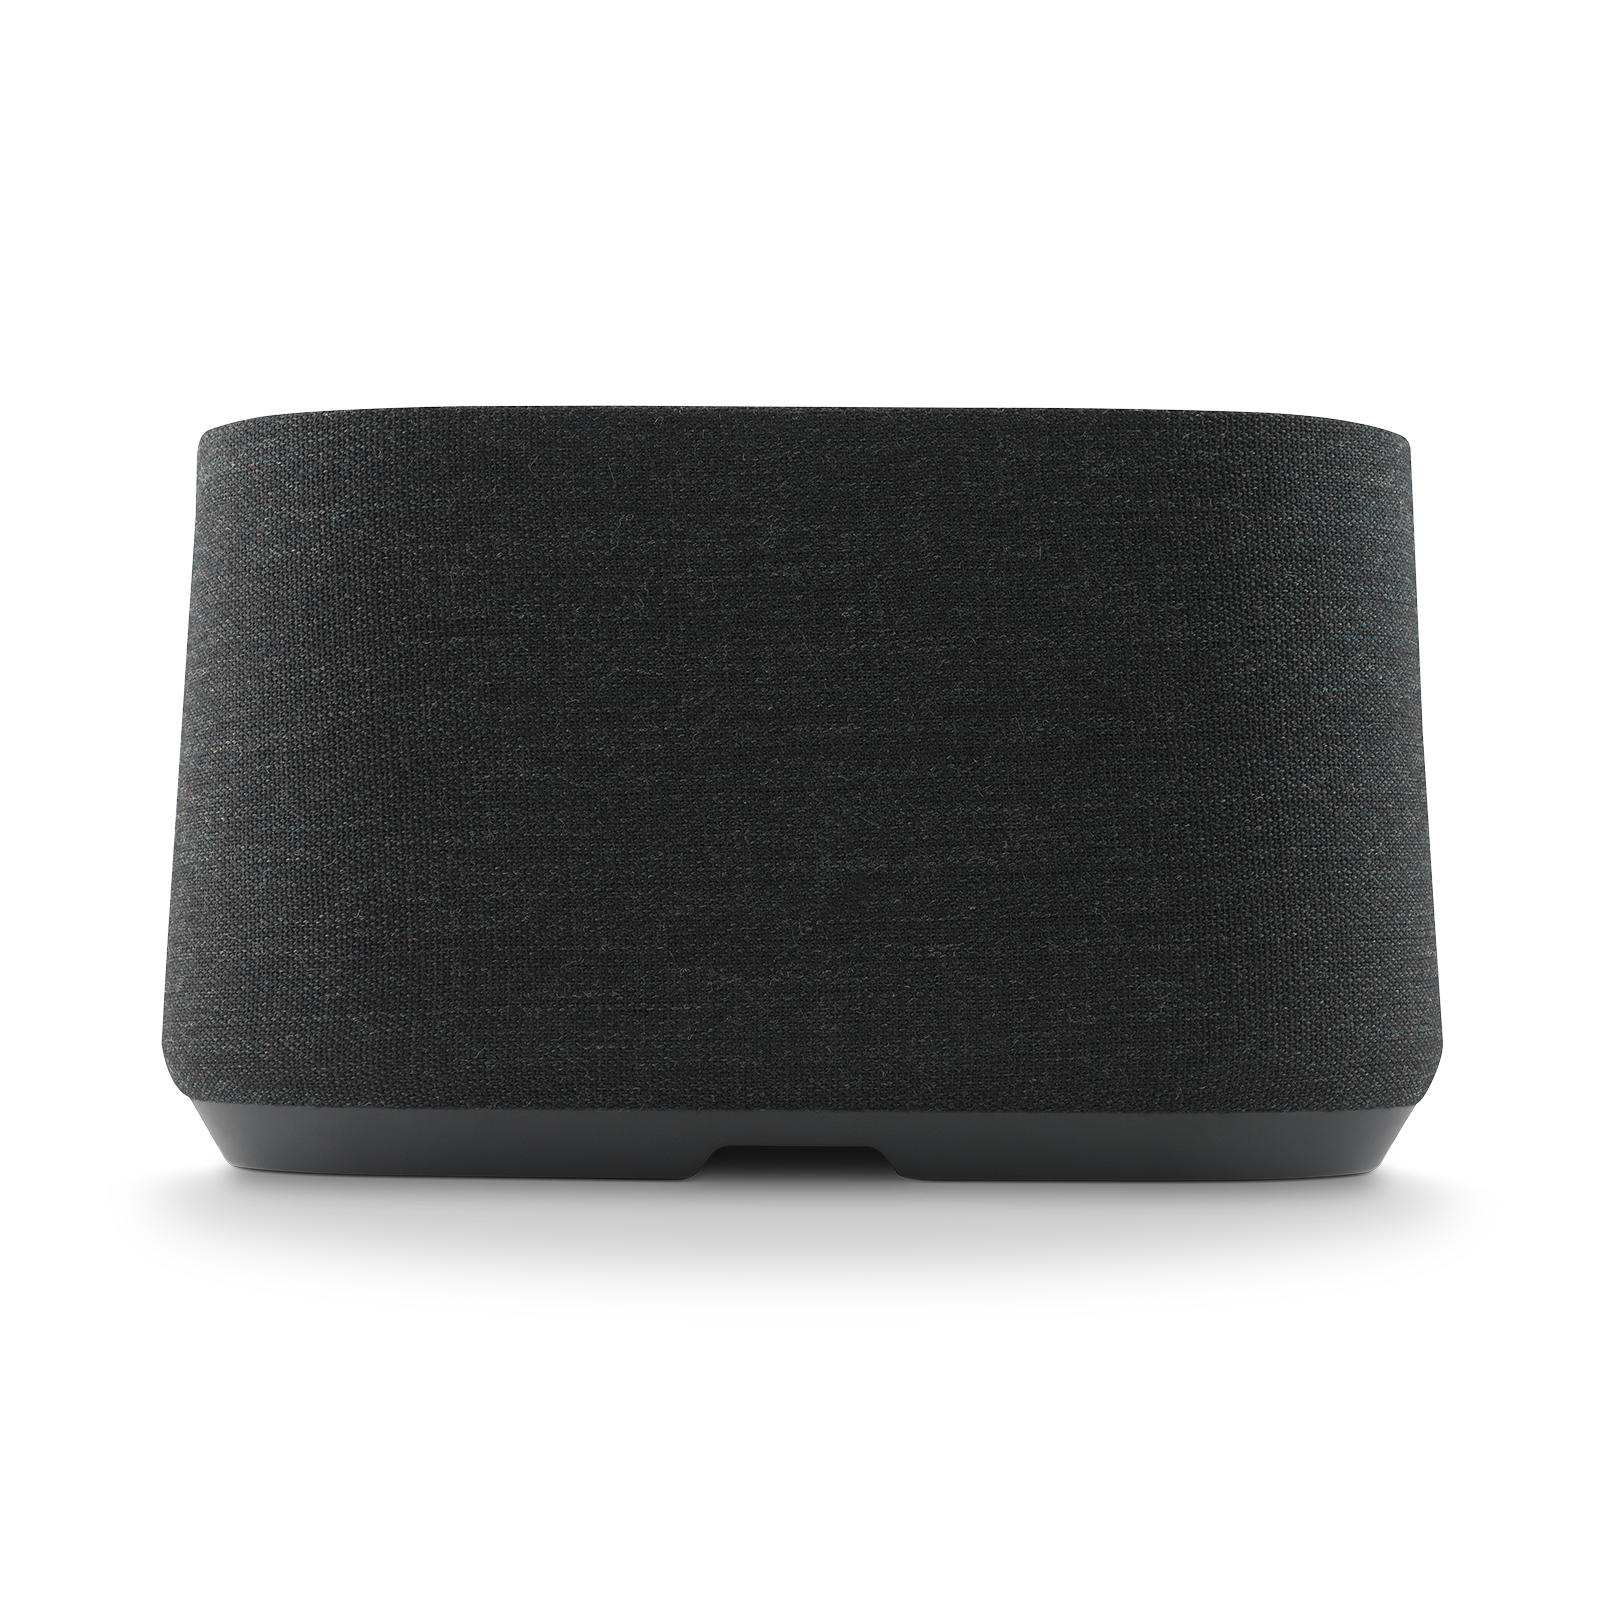 Harman Kardon Citation 300 - Black - The medium-size smart home speaker with award winning design - Back